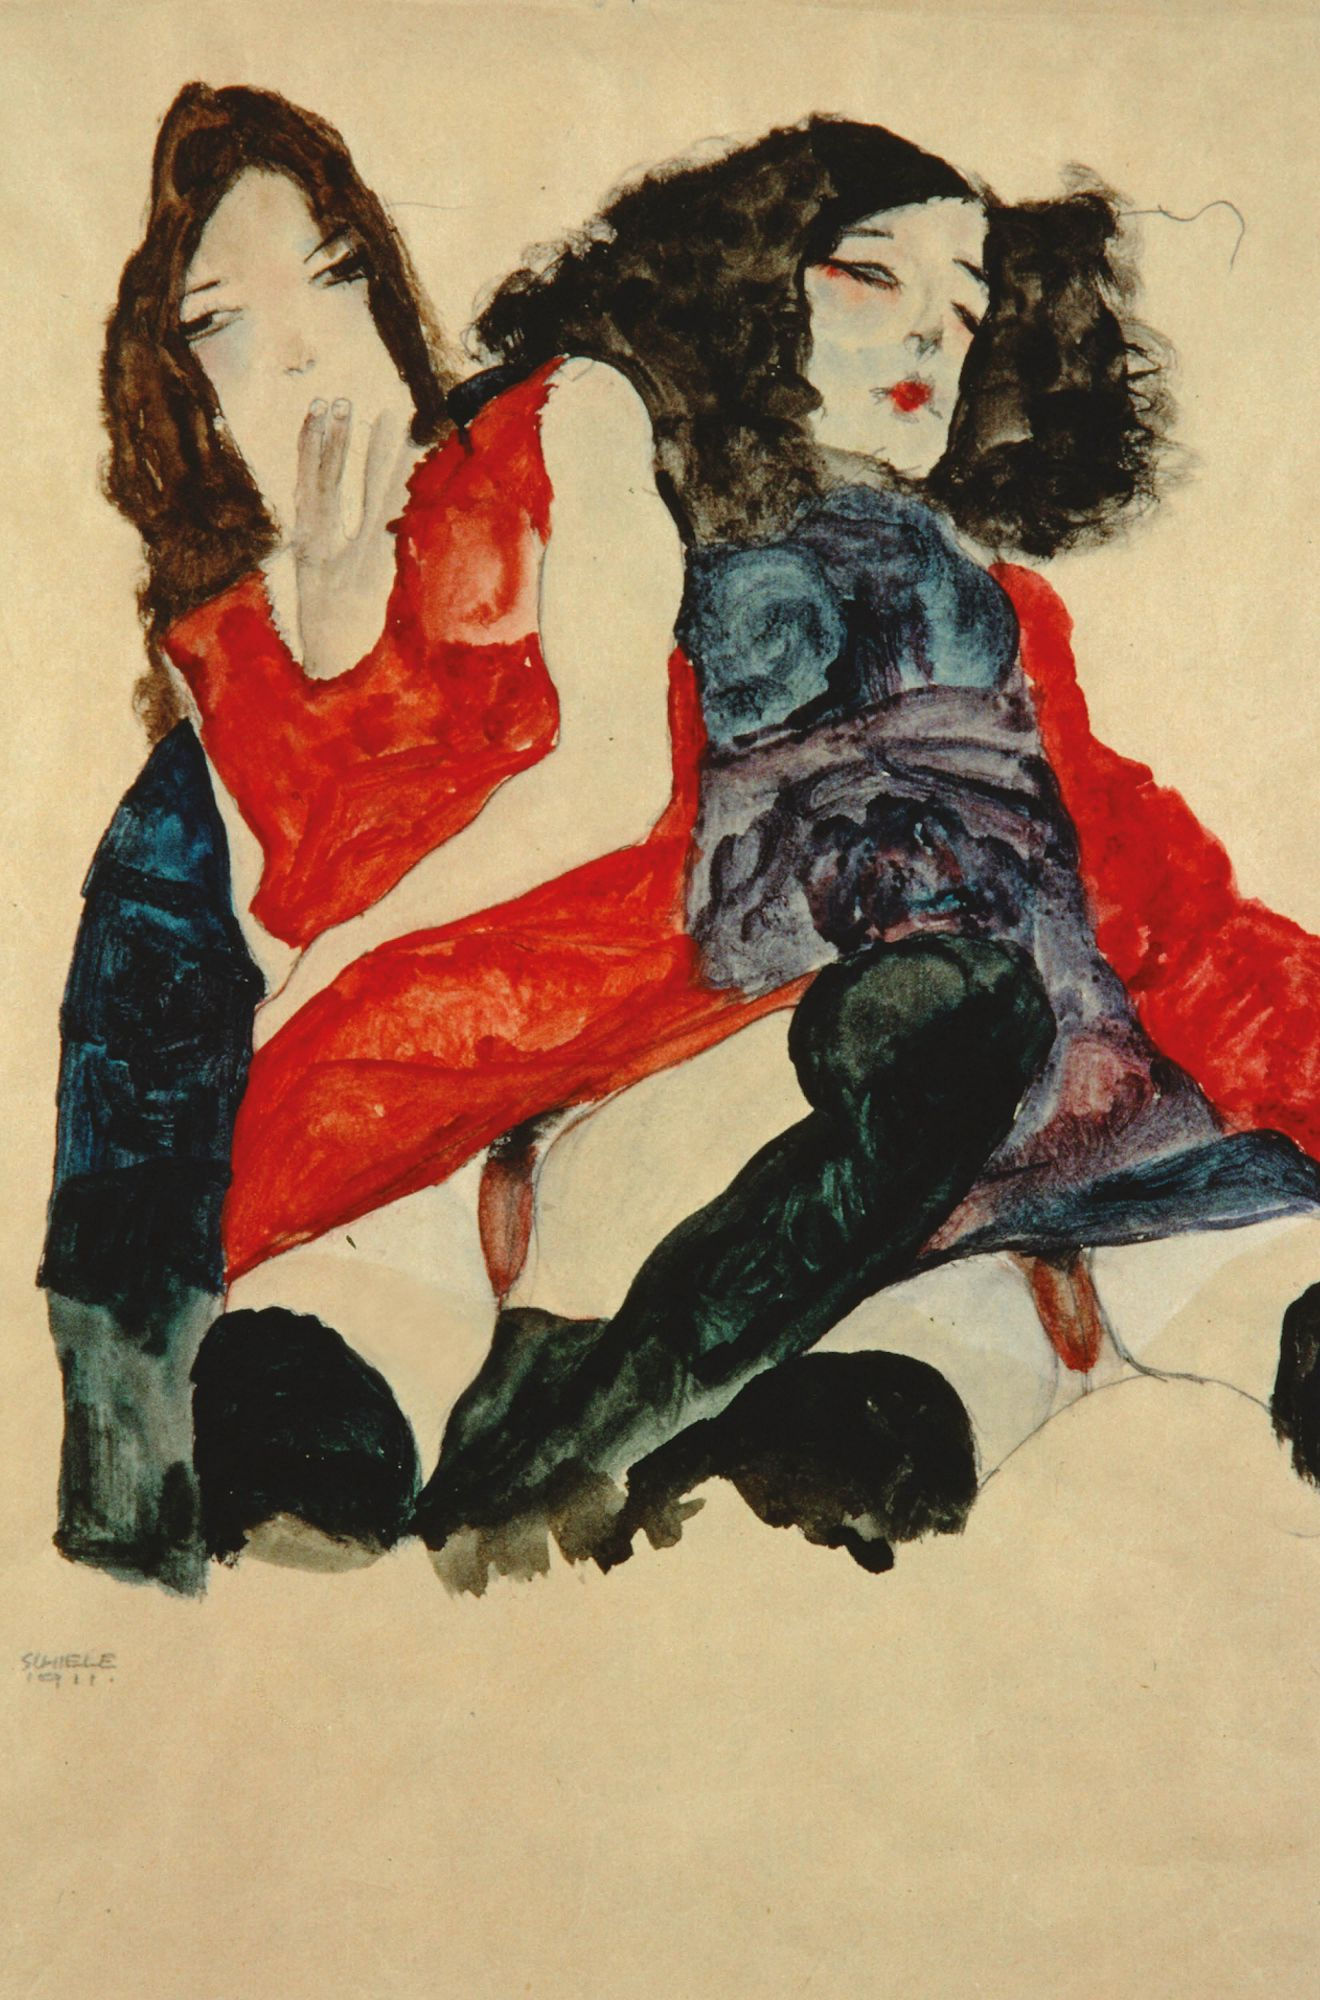 Egon Schiele, Two Girls (1911) (Photo: Courtesy of Richard Nagy Ltd, London)